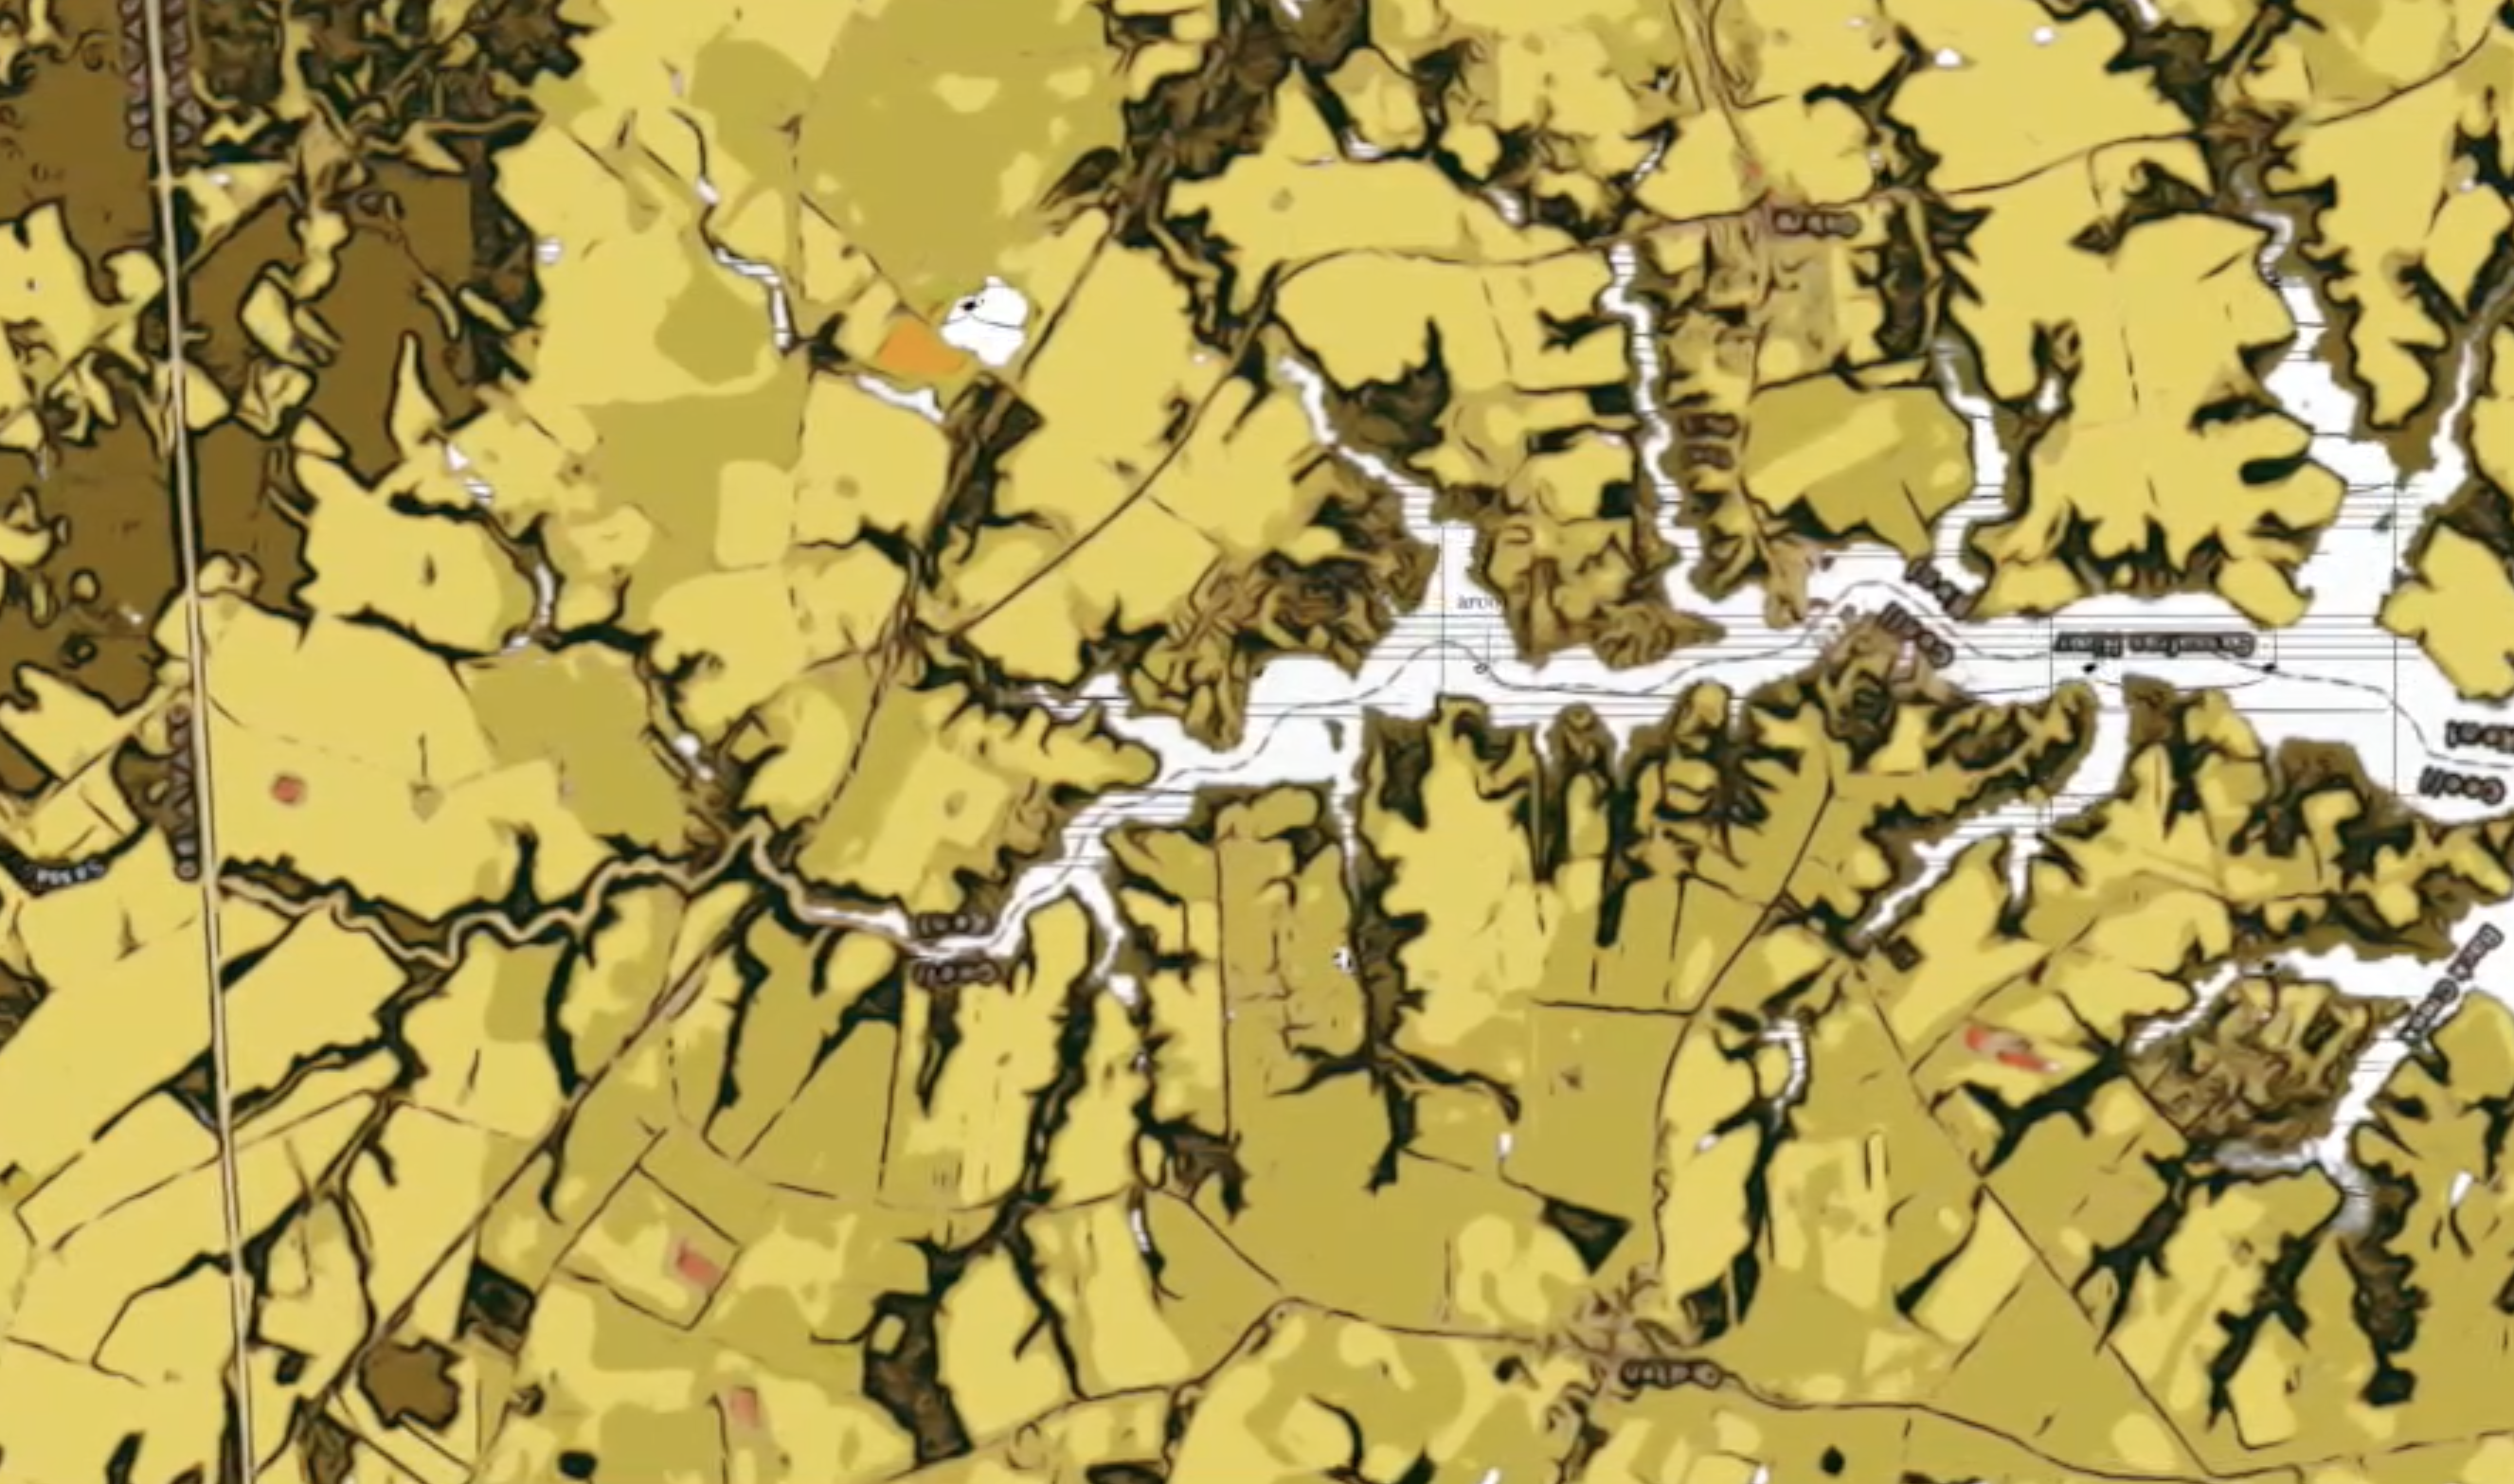 aerial satellite image of one tributary of the Chesapeake Bay